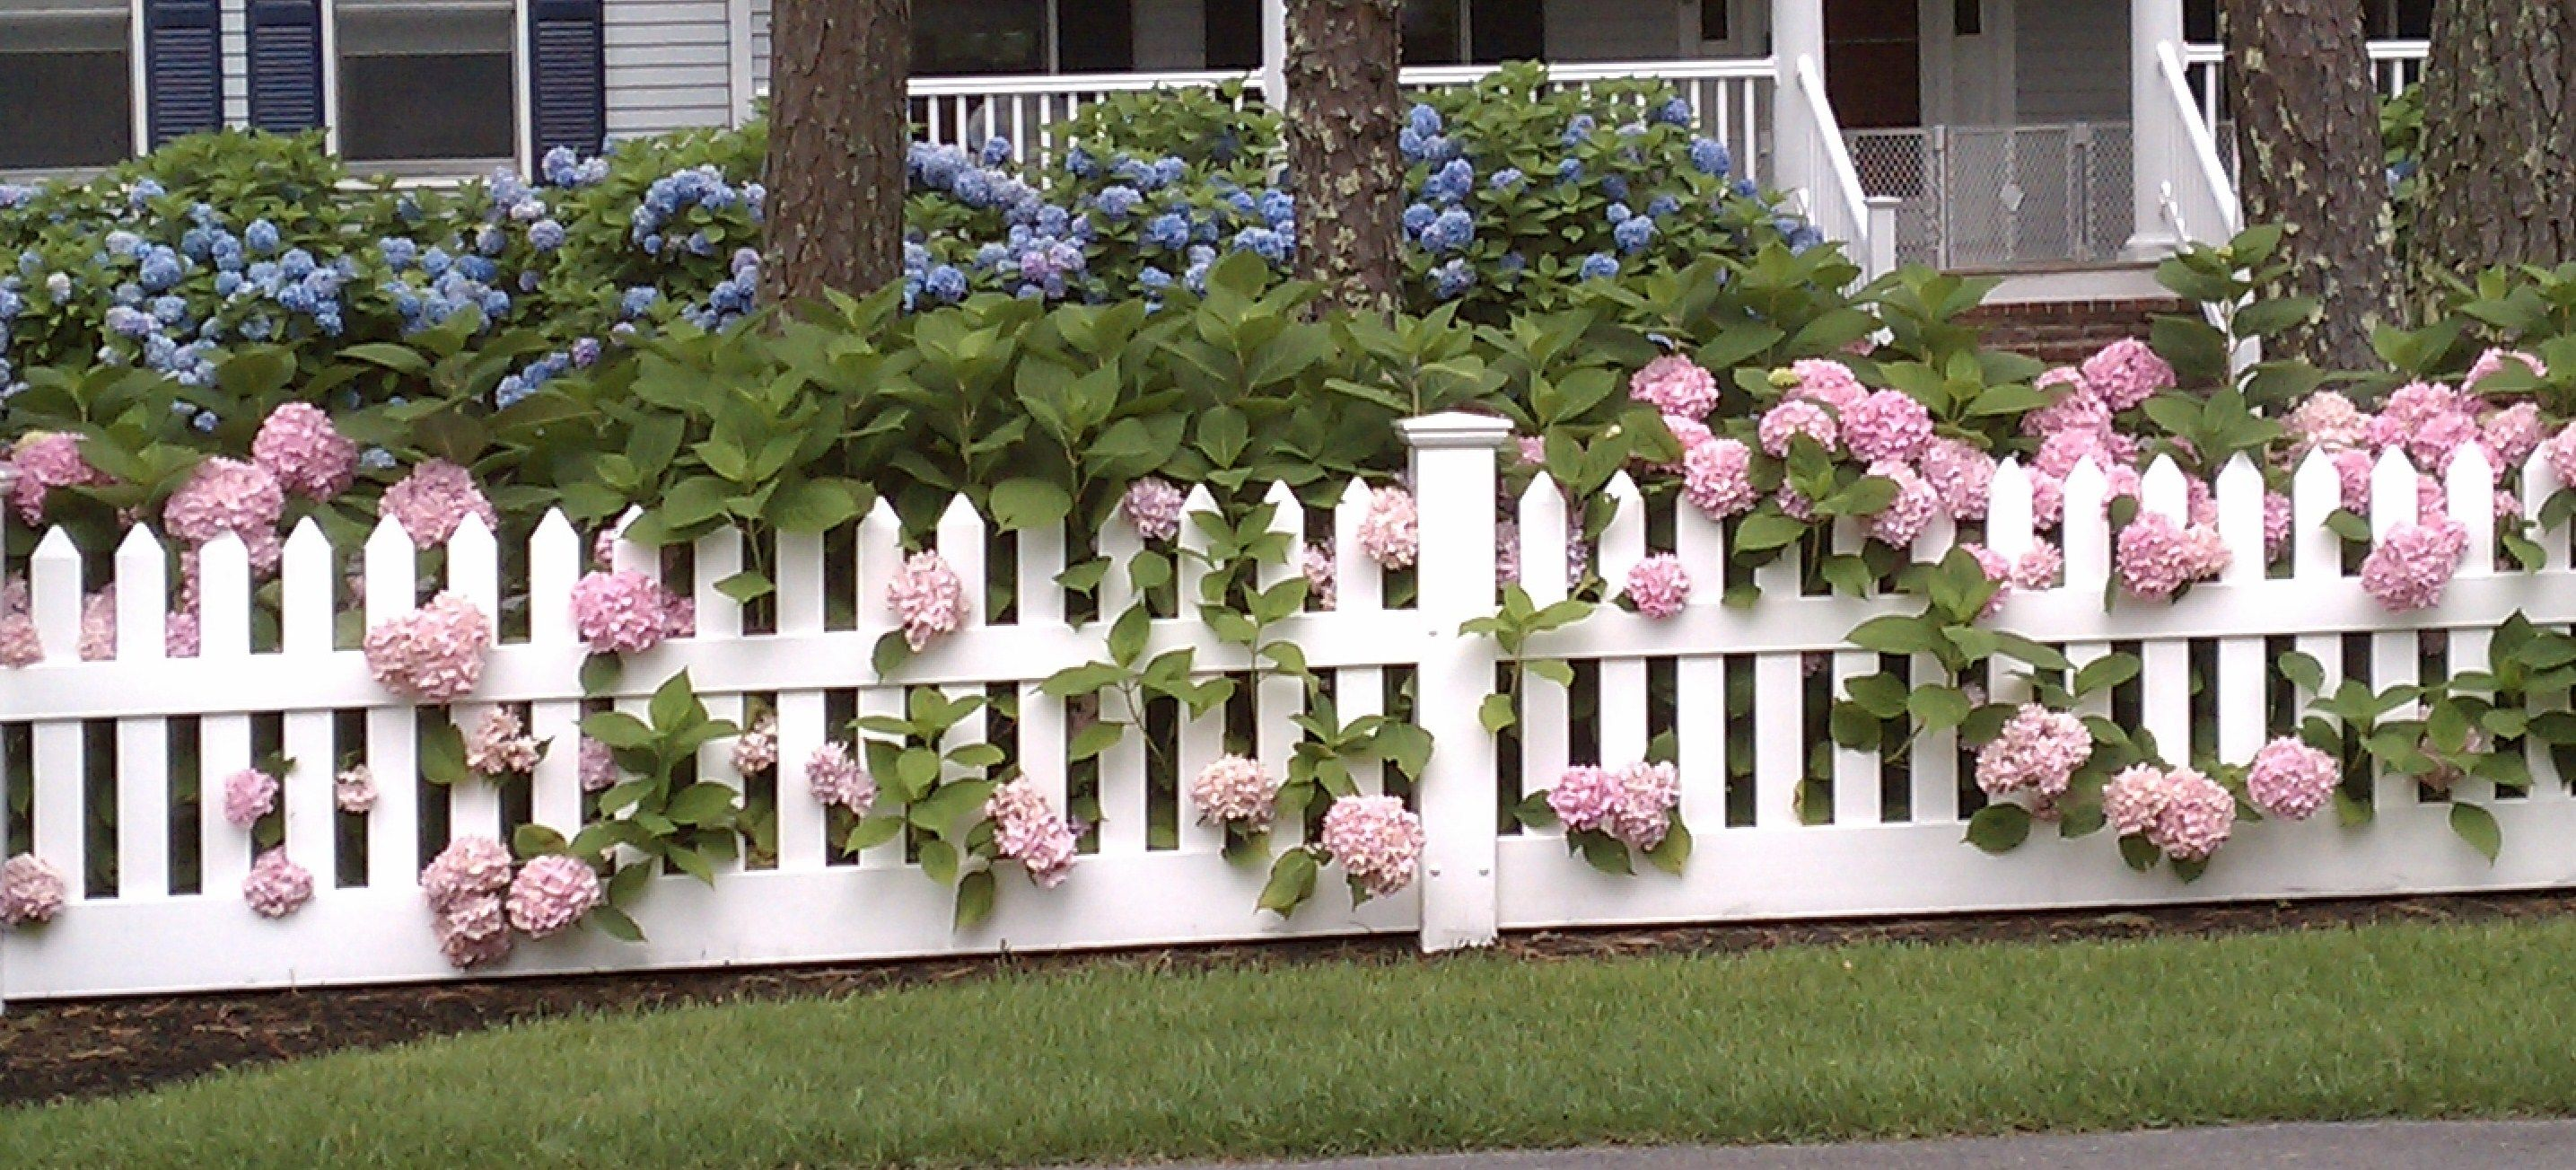 Planting A Garden With Images Picket Fence Garden White